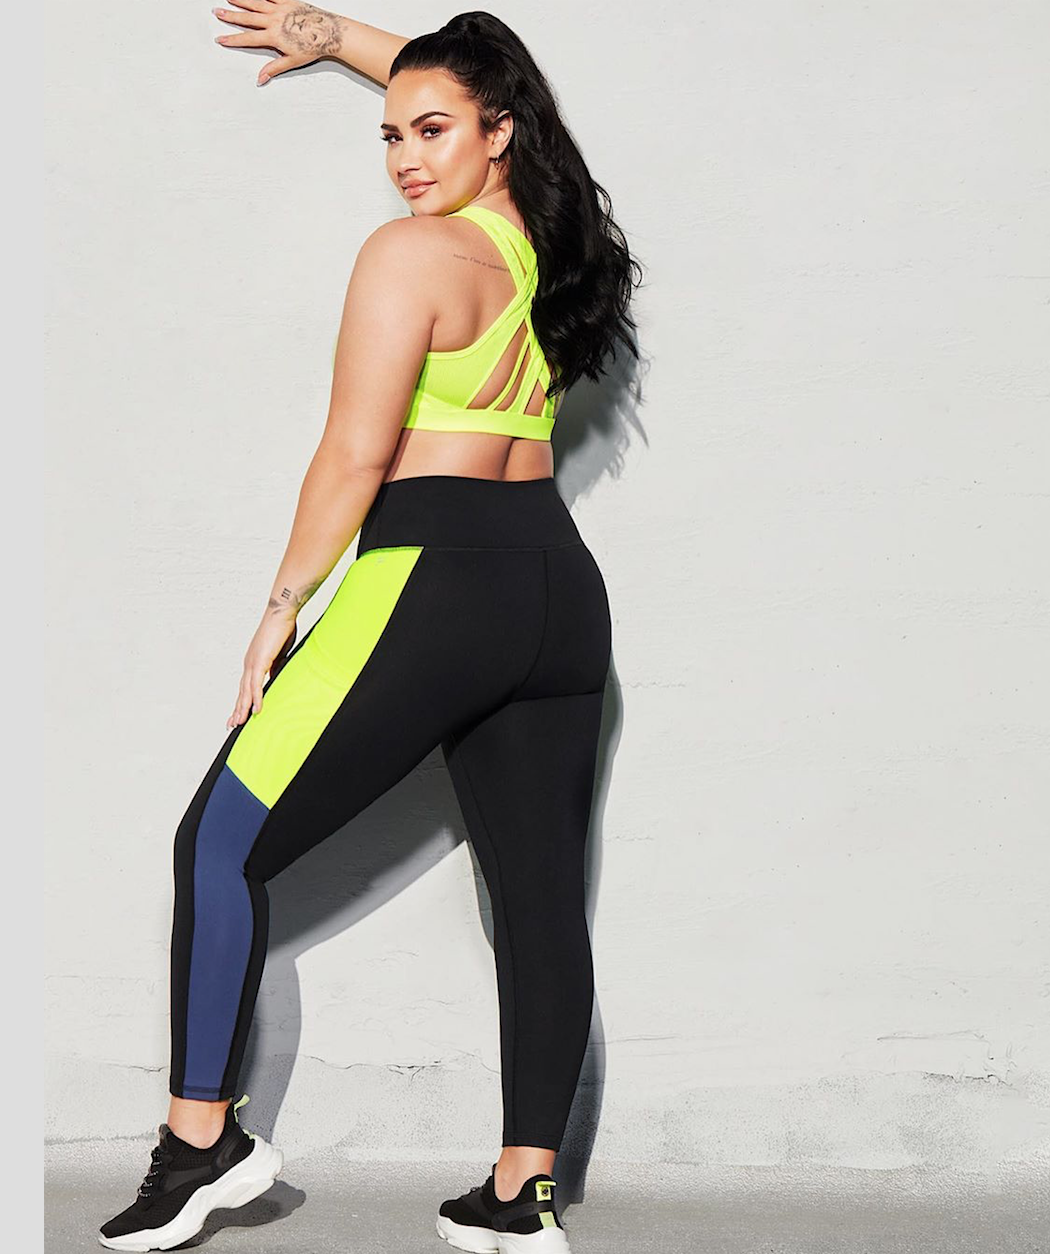 Demi Lovato Shows Off Smoking Body In Tight Yoga Pants Facebook gives people the power to share. smoking body in tight yoga pants